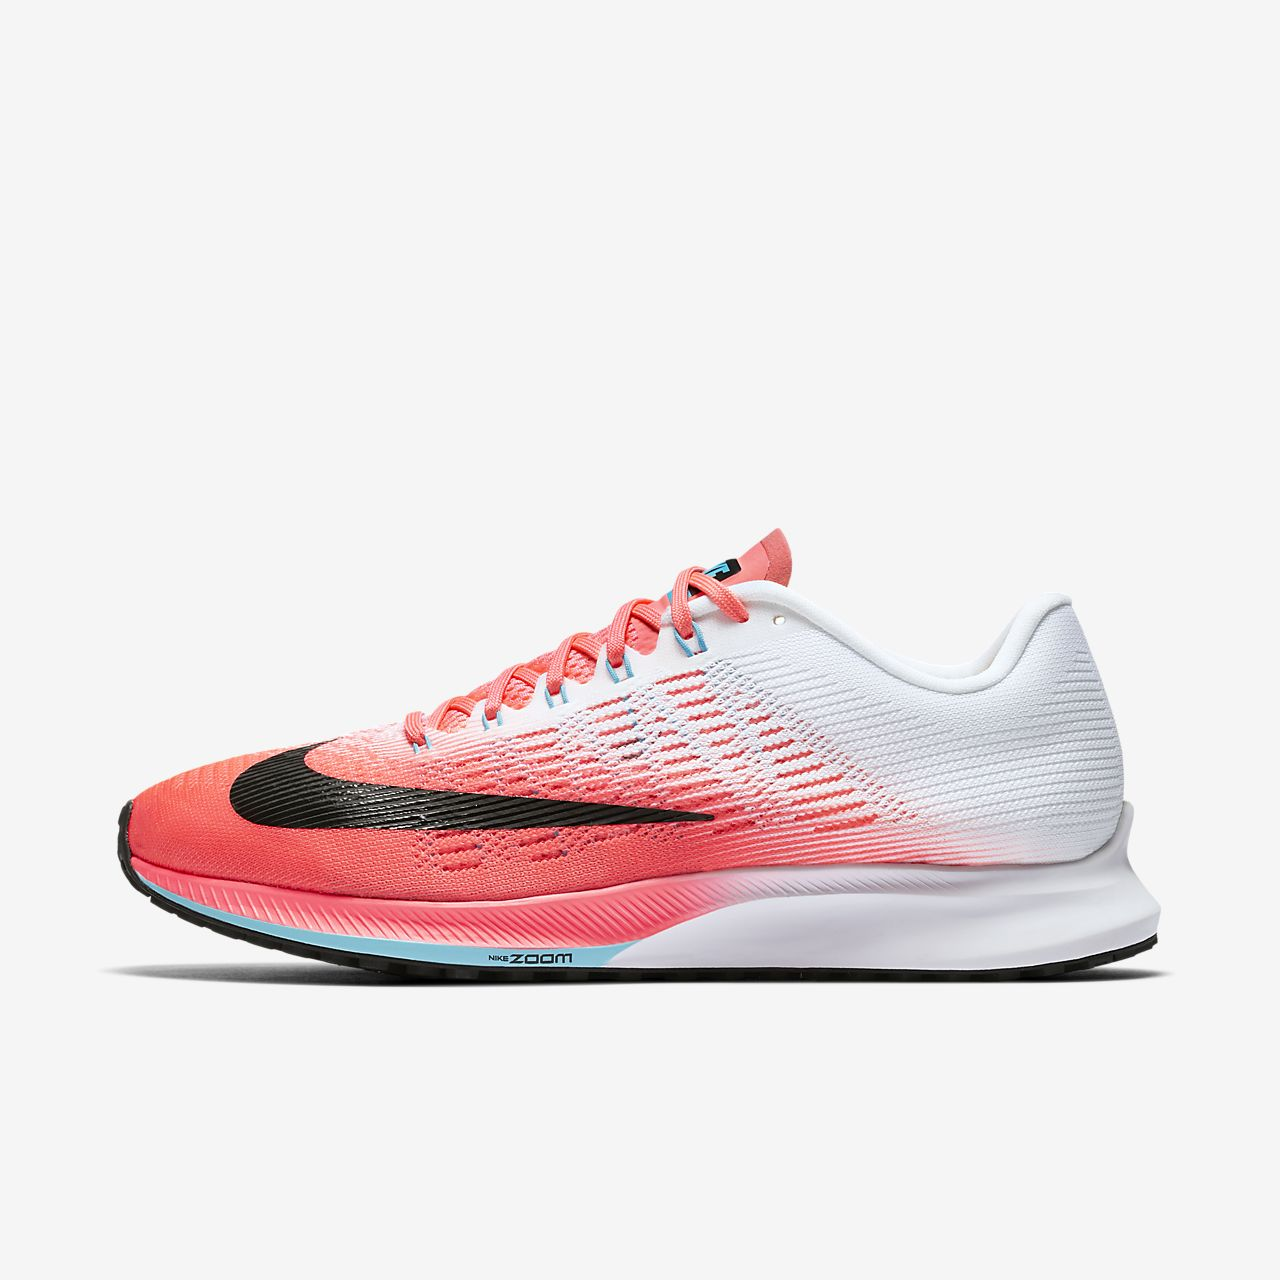 Nike Air Zoom Elite 9 Breathable Lightweight Running Shoes Women Shoes 863770600 5 Top Deals